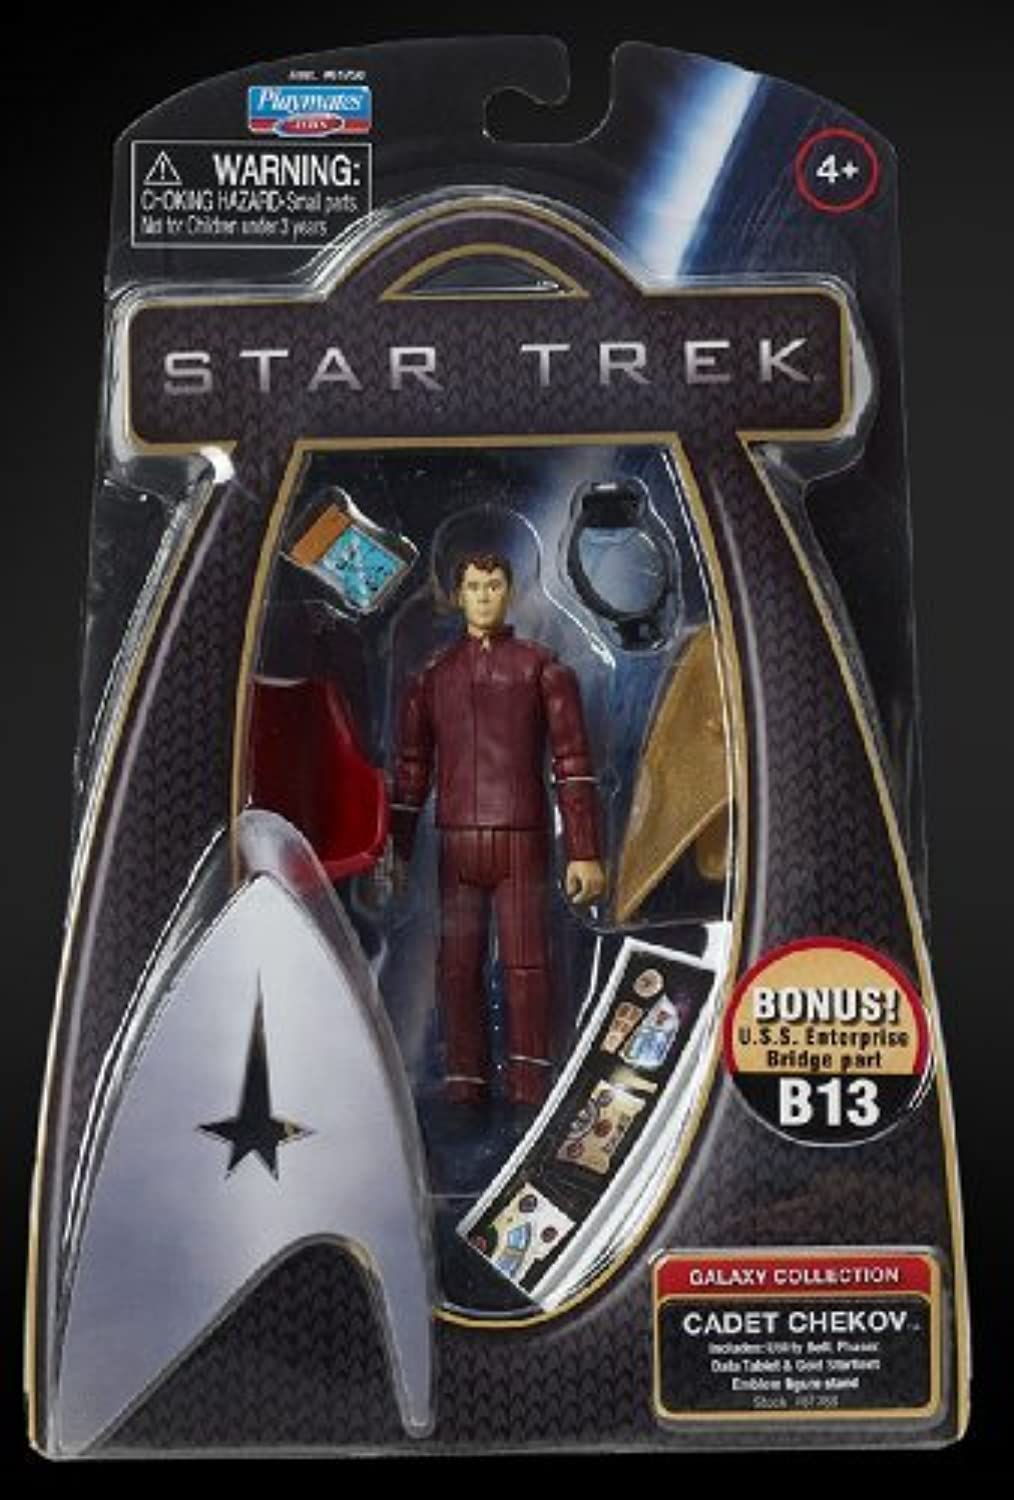 Chekov Star Trek Action Figure Academy Uniform Galaxy Collection by Star Trek